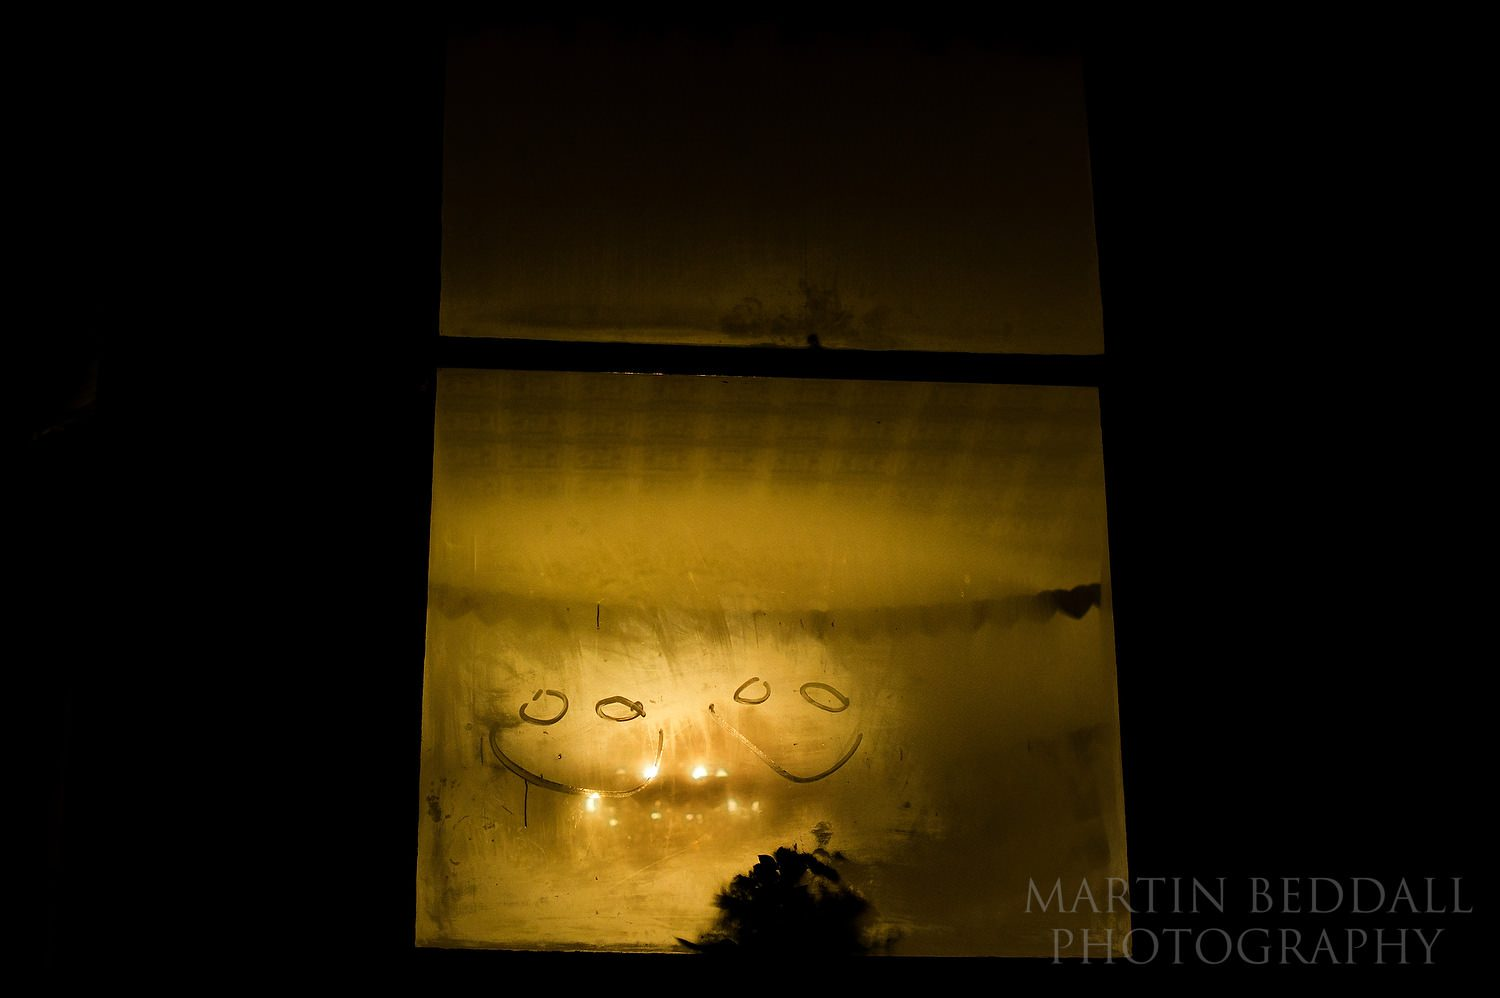 Smiley faces on the steamed up window